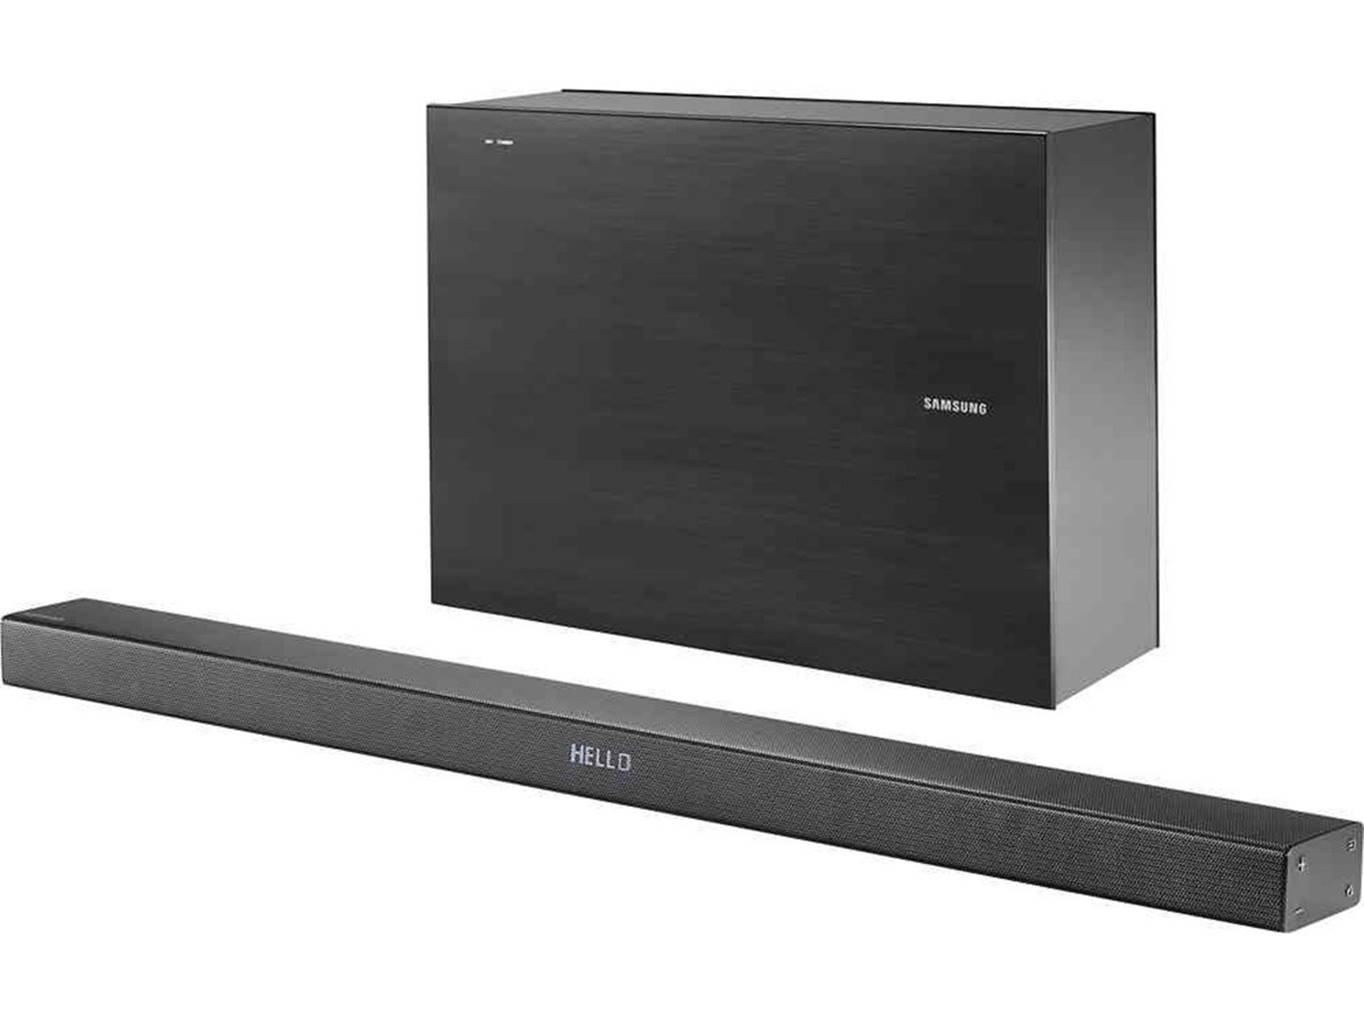 Samsung HW-KM45C Soundbar with Wireless Subwoofer